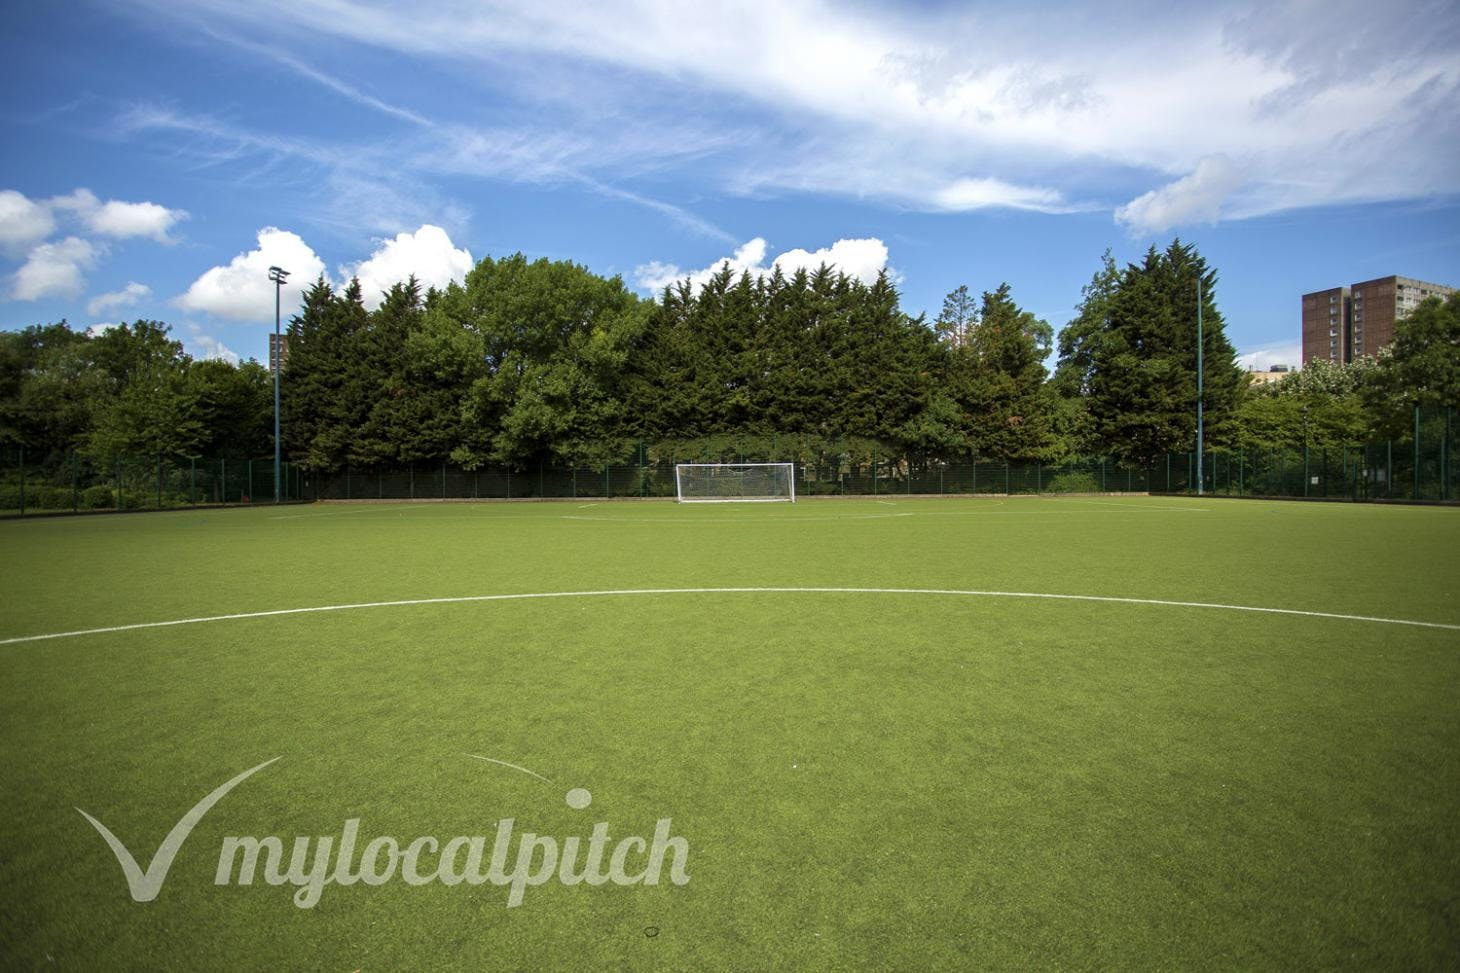 Paddington Recreation Ground 11 a side | 3G Astroturf football pitch